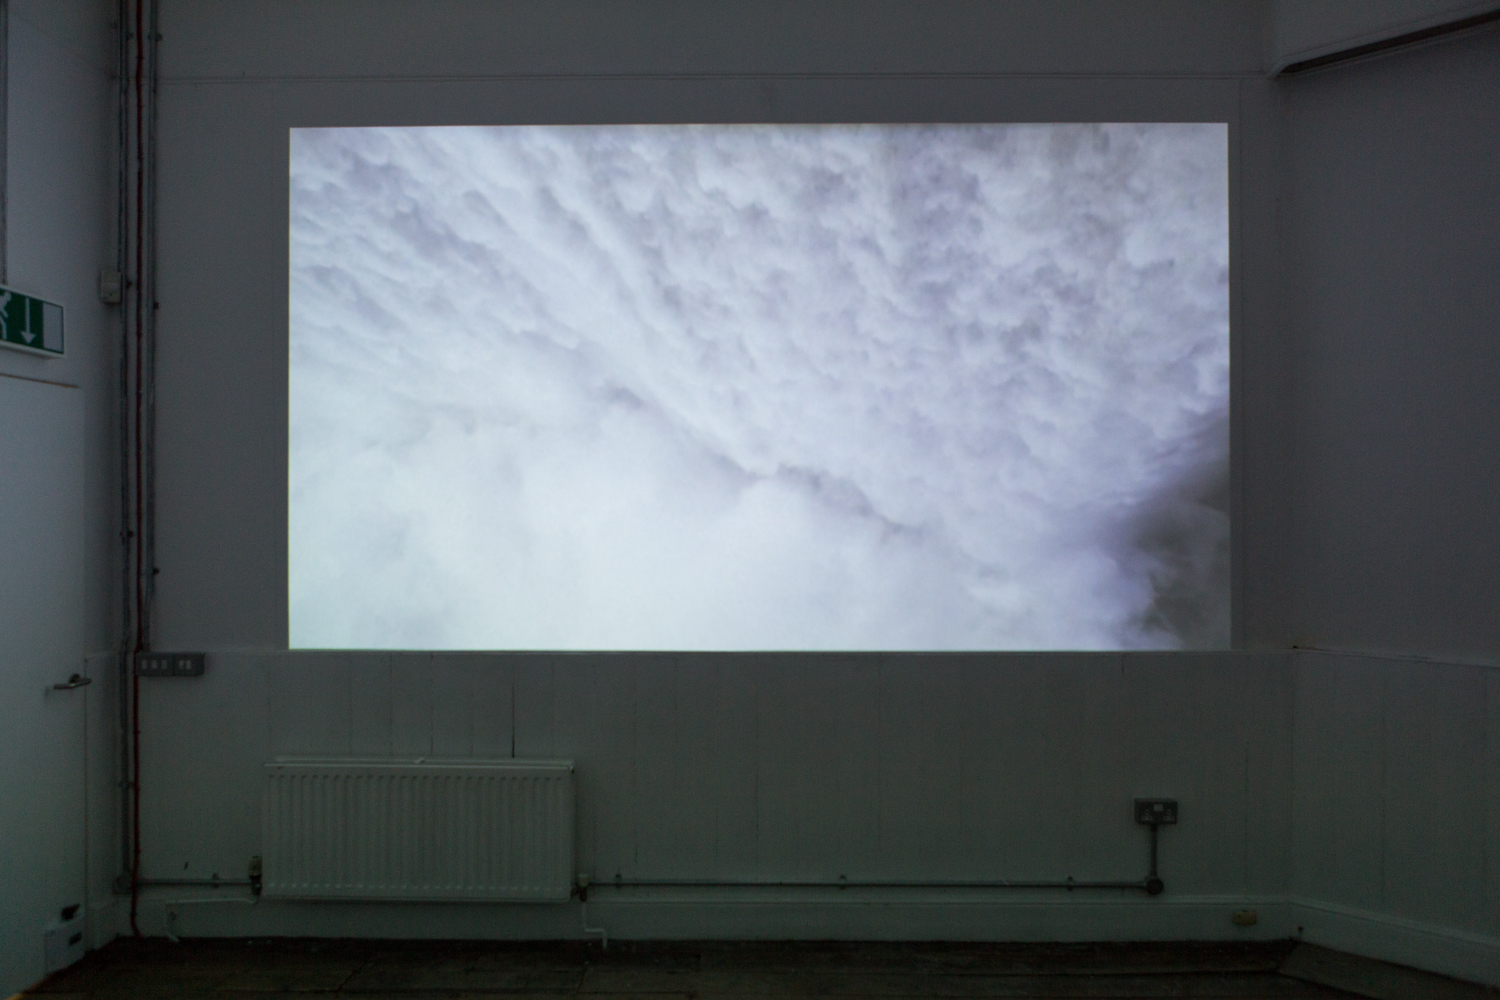 Alex Perweiler  The Wash , 2014 Video Continuous Loop